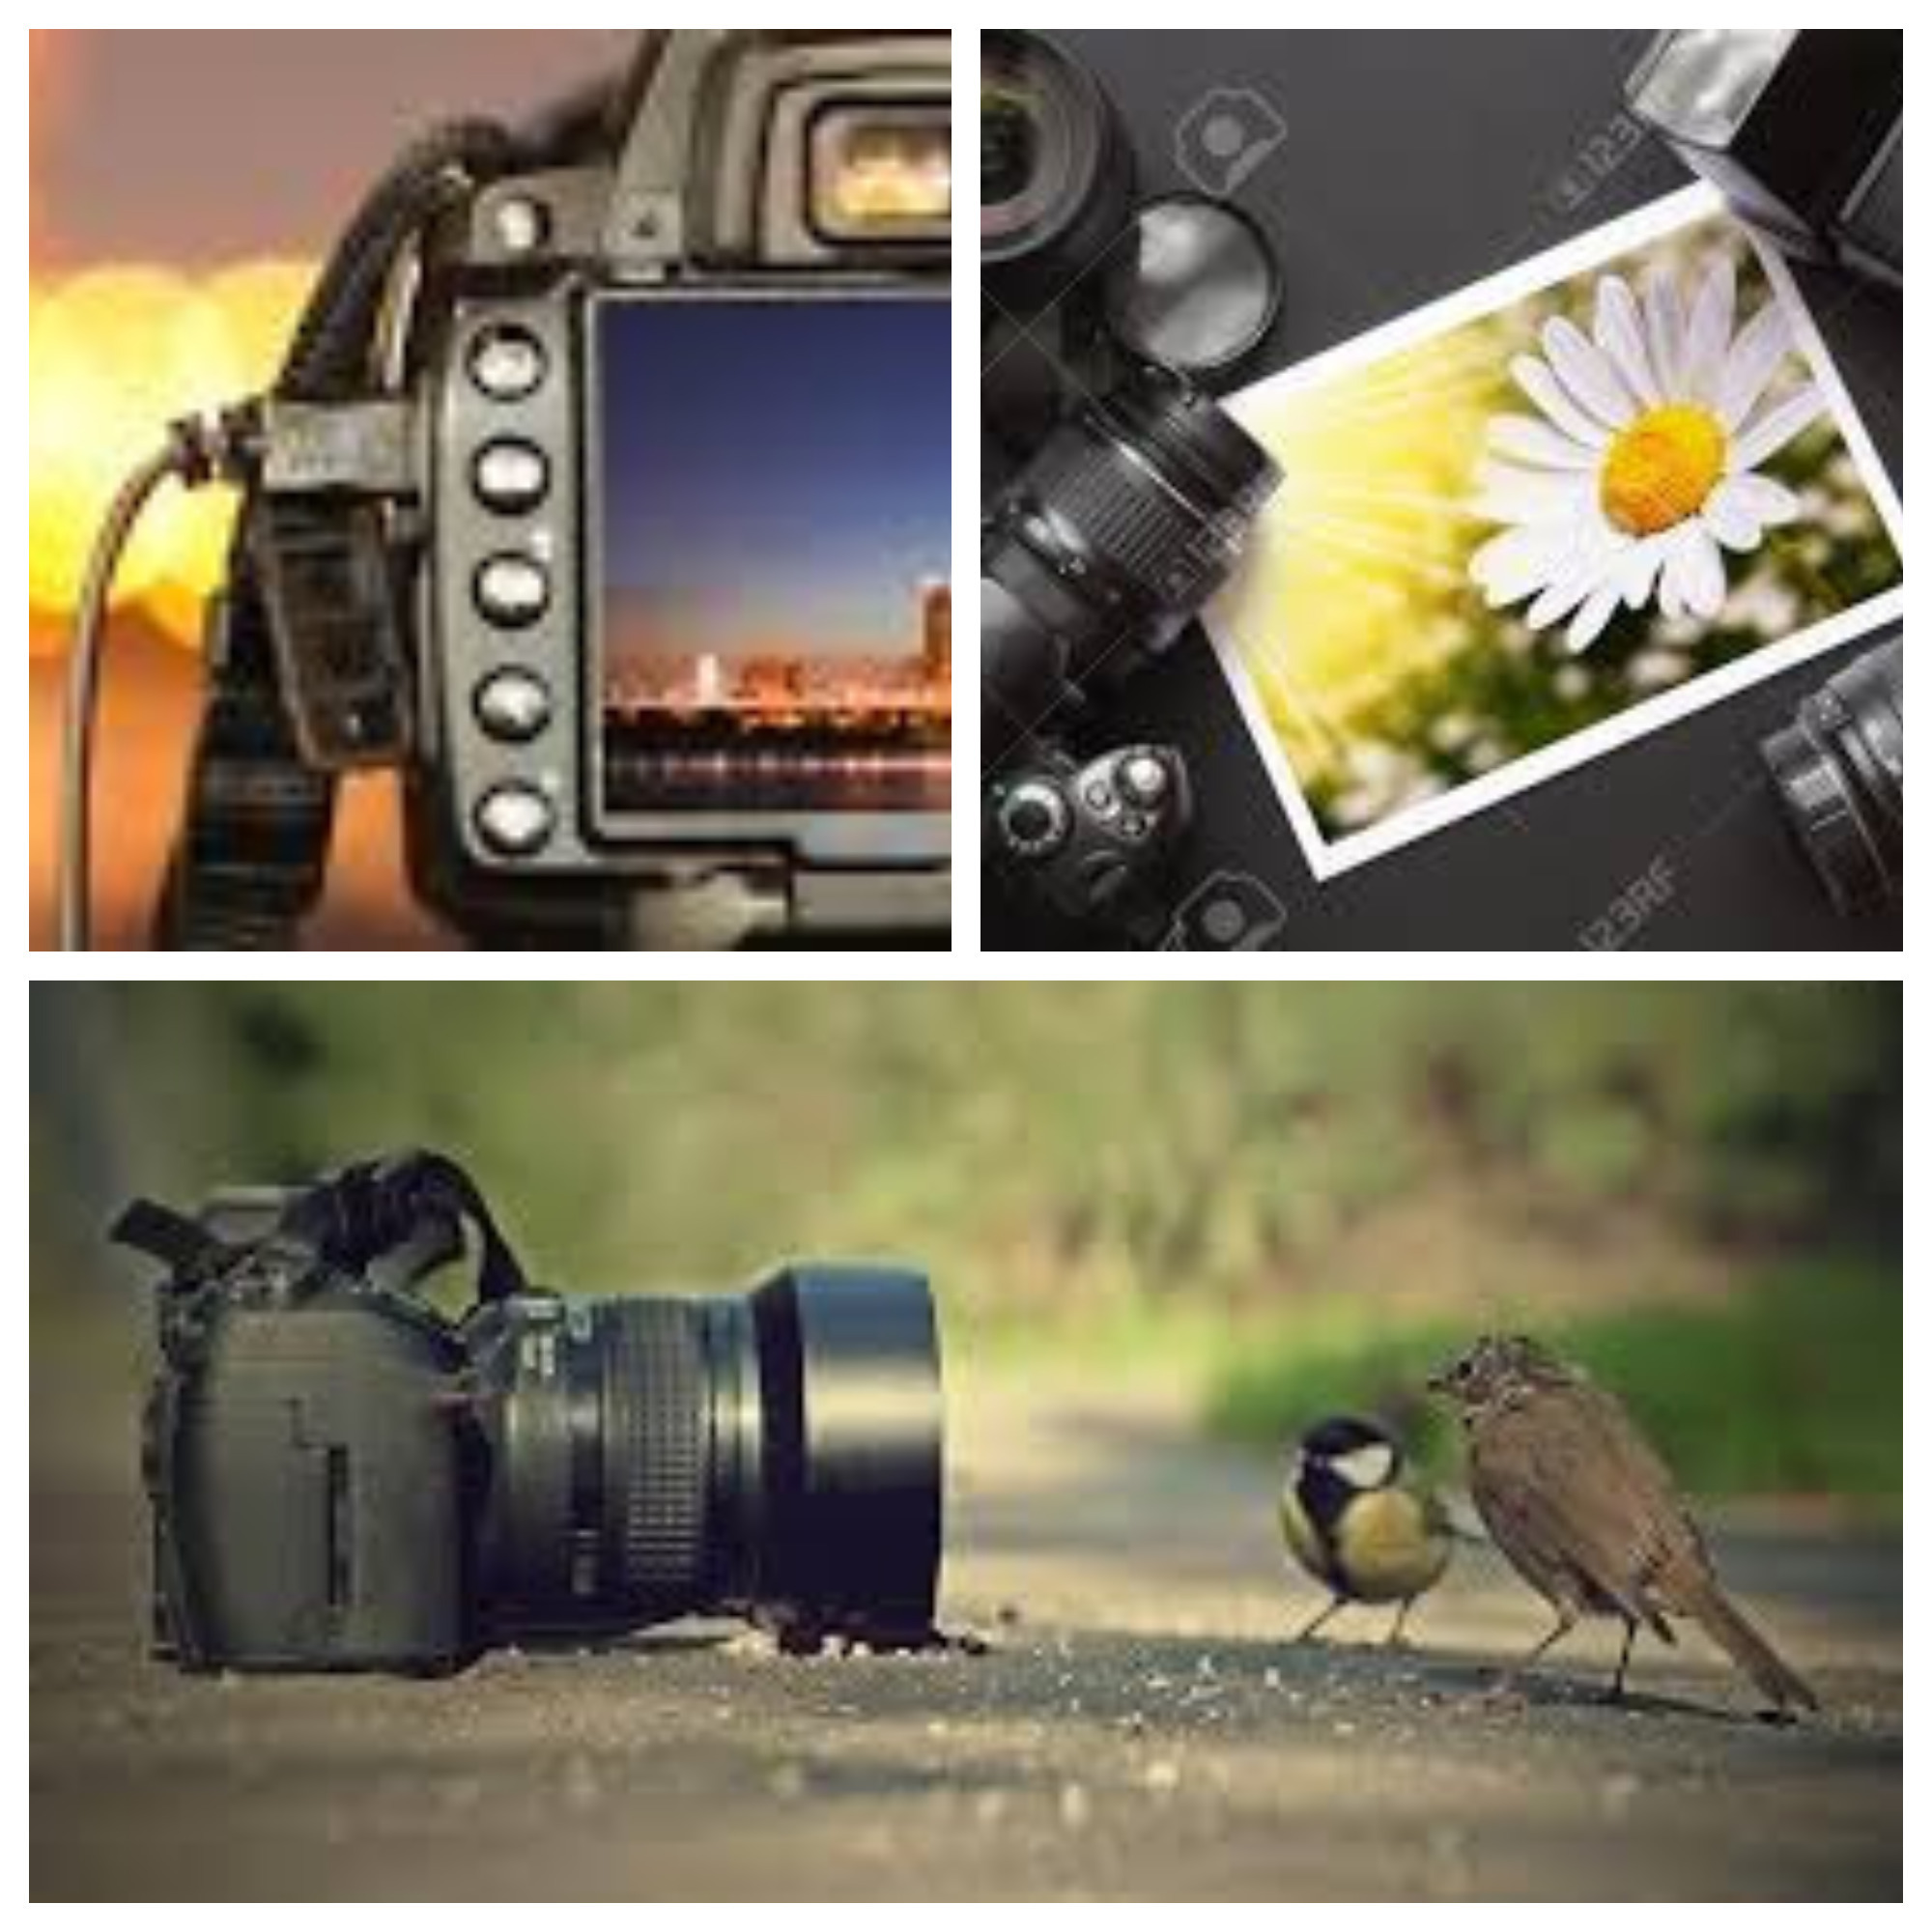 A collage of three pictures showing cameras and photographs